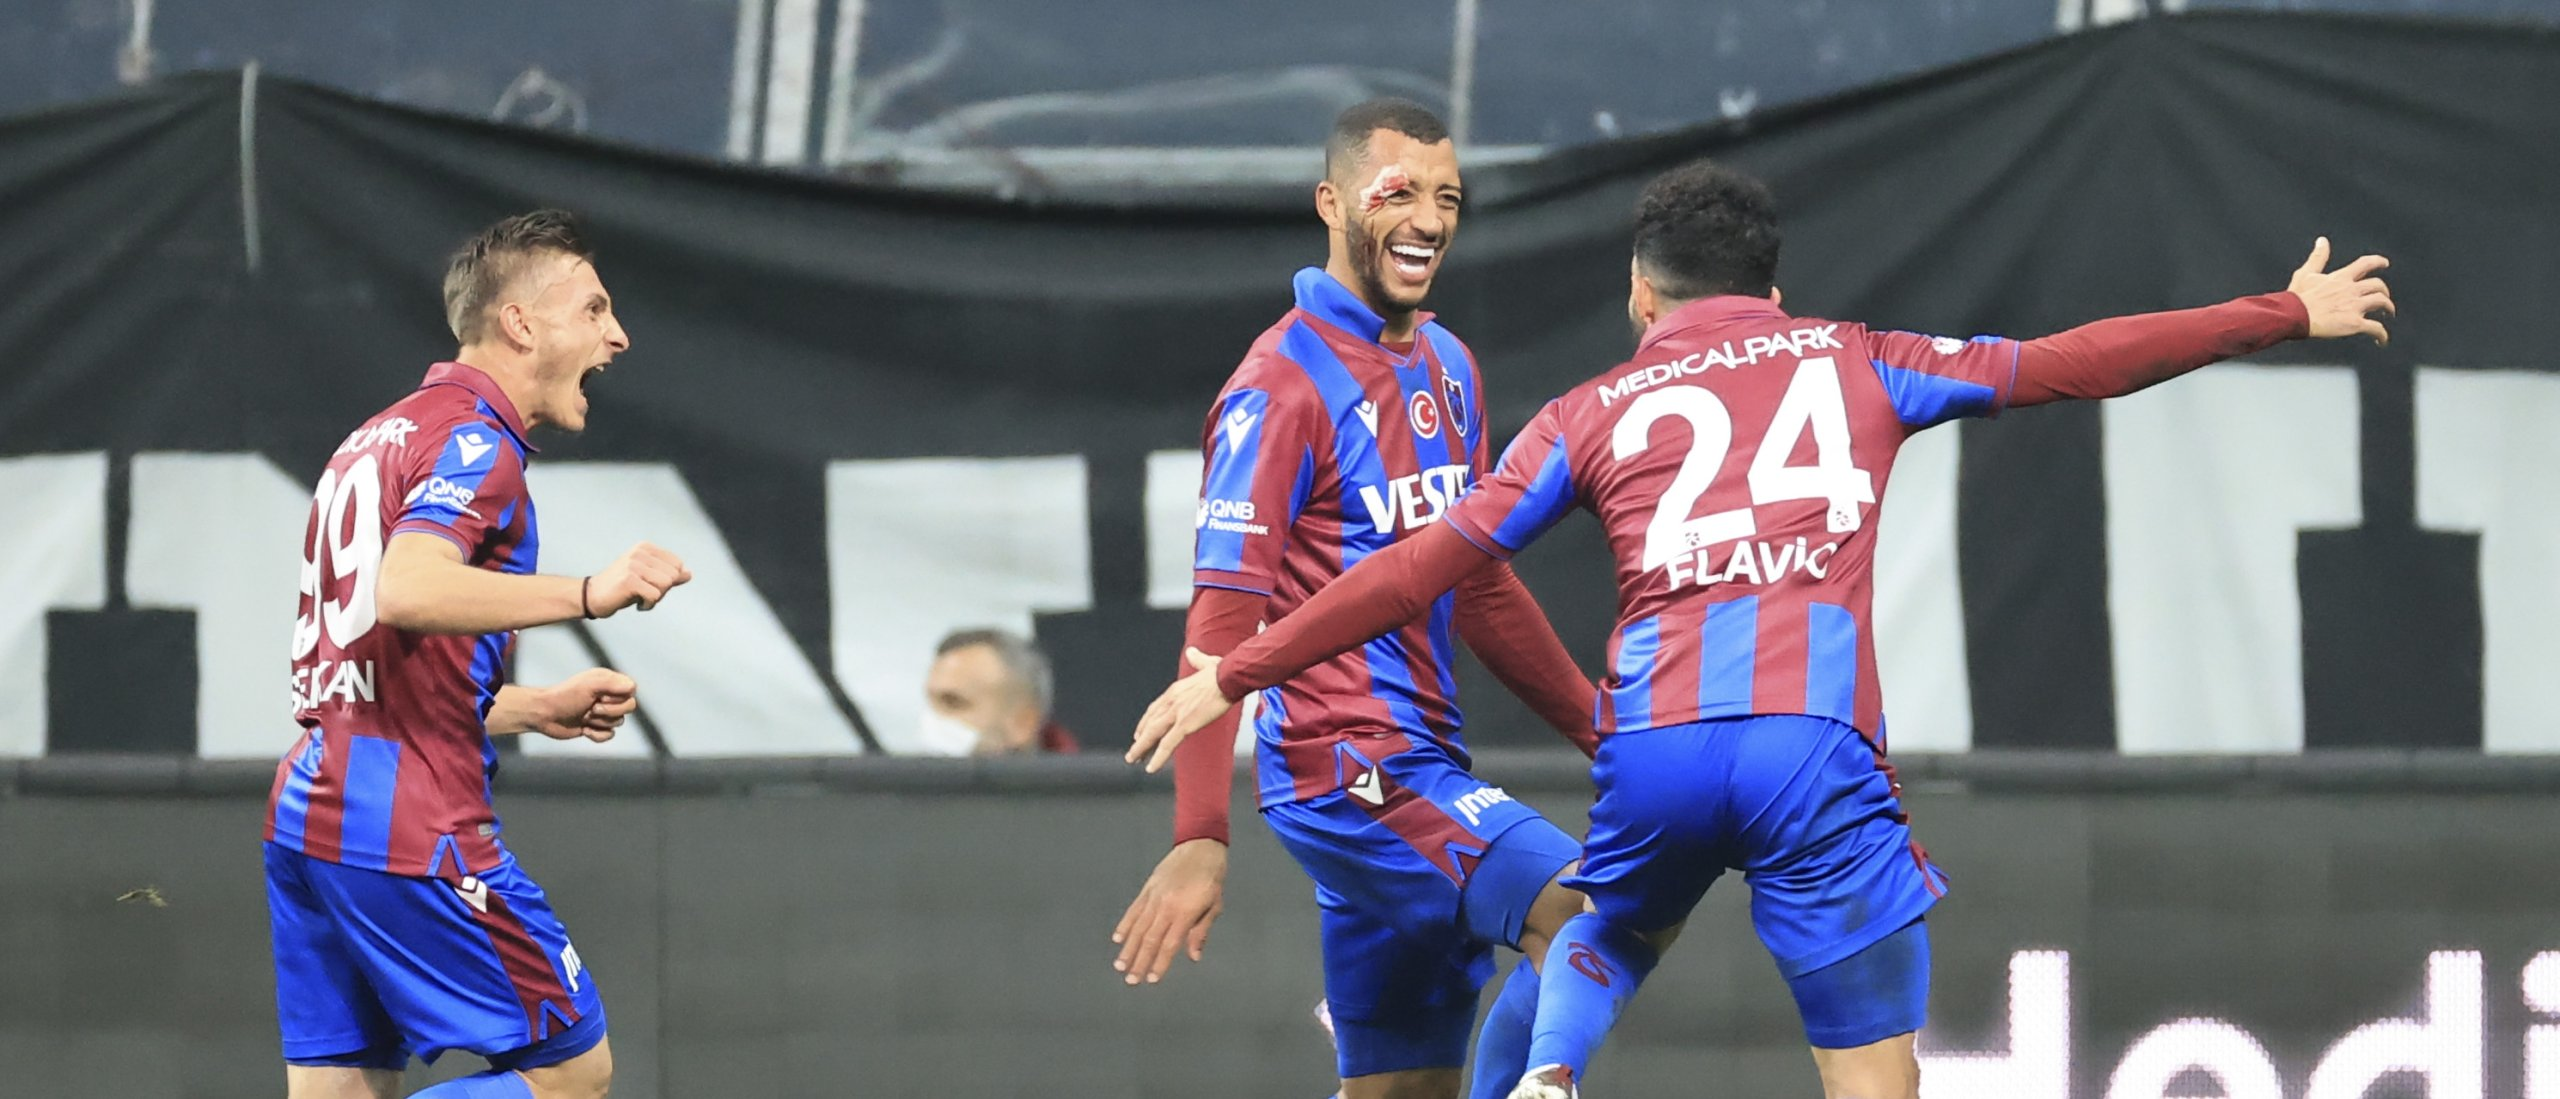 Trabzonspor defender Vitor Hugo (C) celebrates his match-winning goal against Beşiktaş with teammates at Vodafone Stadium, Istanbul, Turkey, Jan. 31, 2021. (AA Photo)